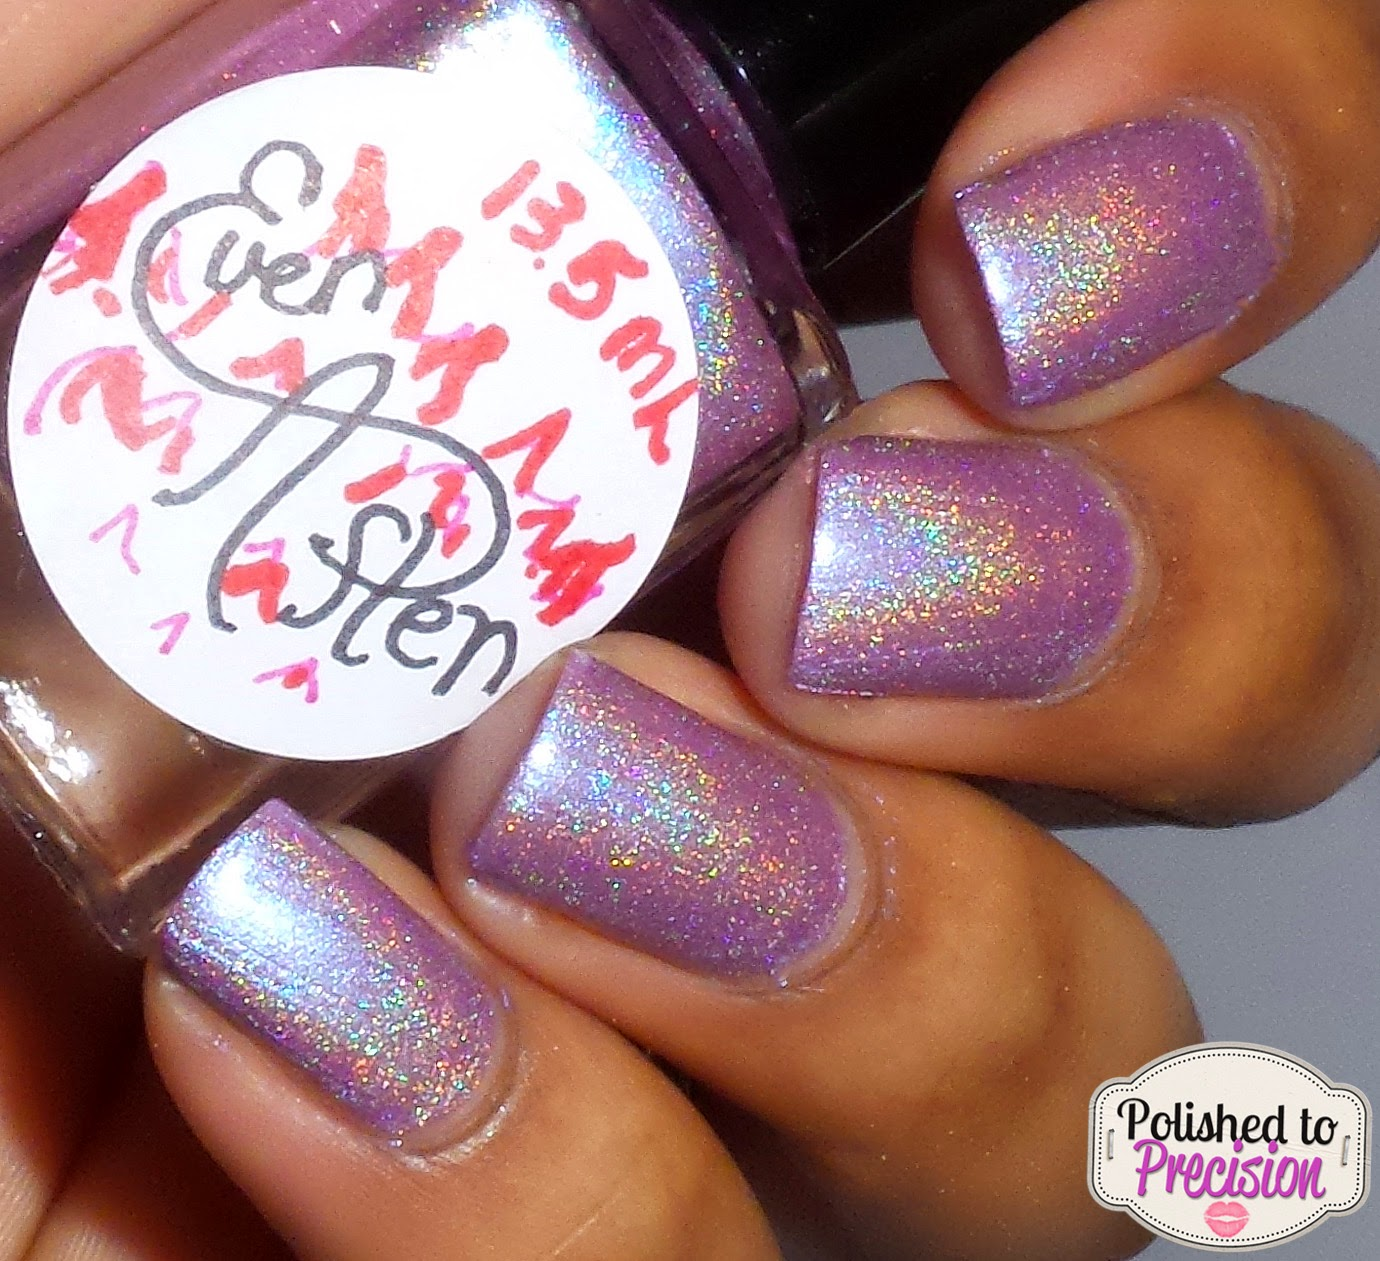 Ever After Polish 2 Hot 4 U